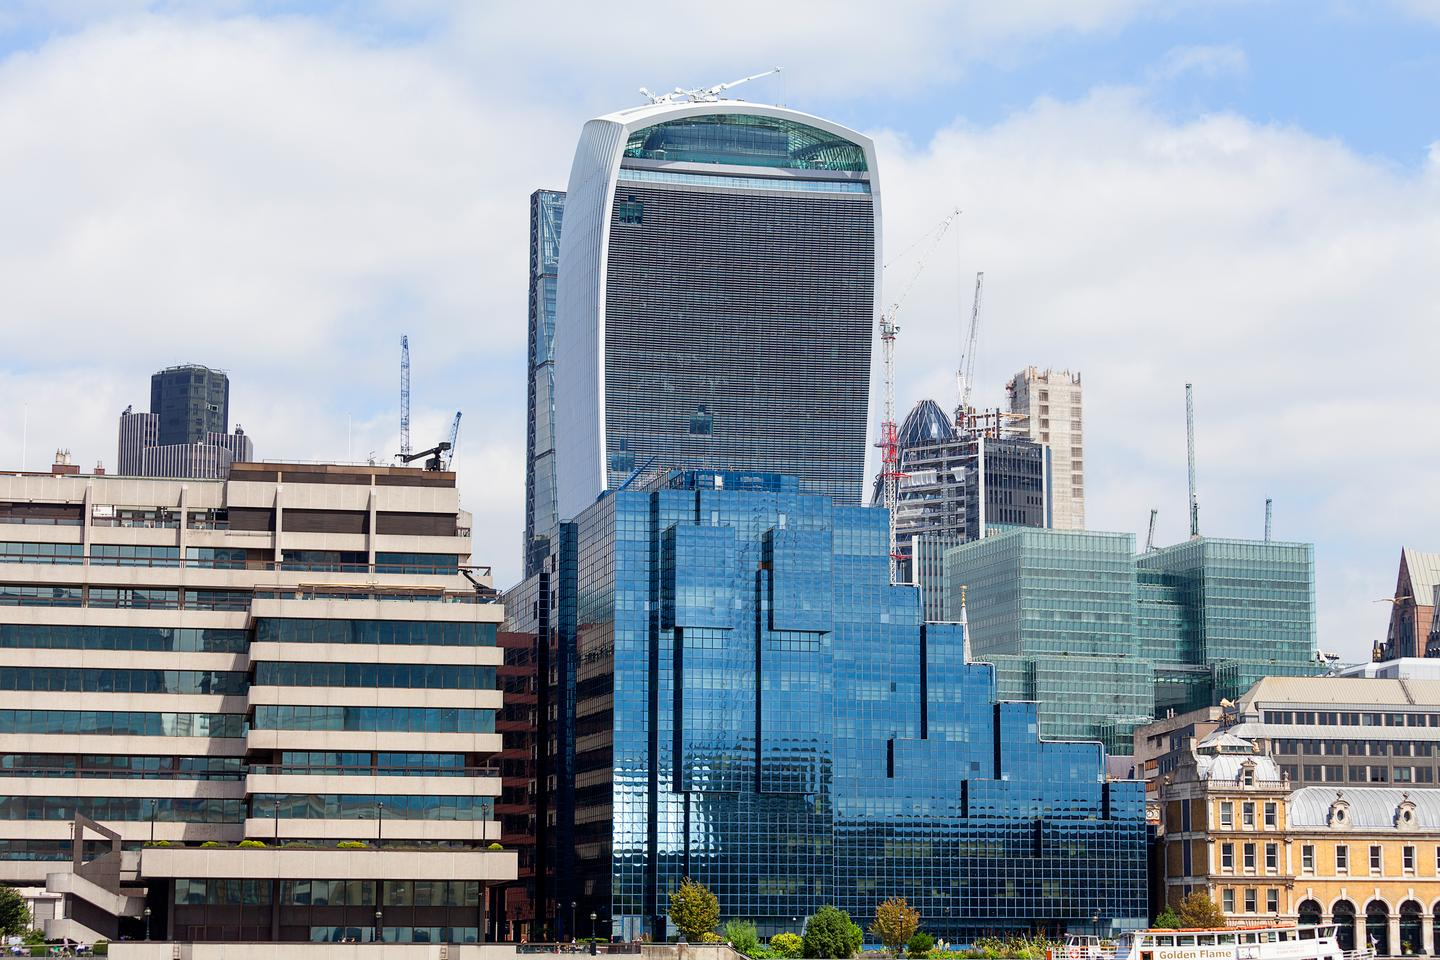 The City of London Corporation will start sourcing100 percent of its electricity needs from renewablesfrom October